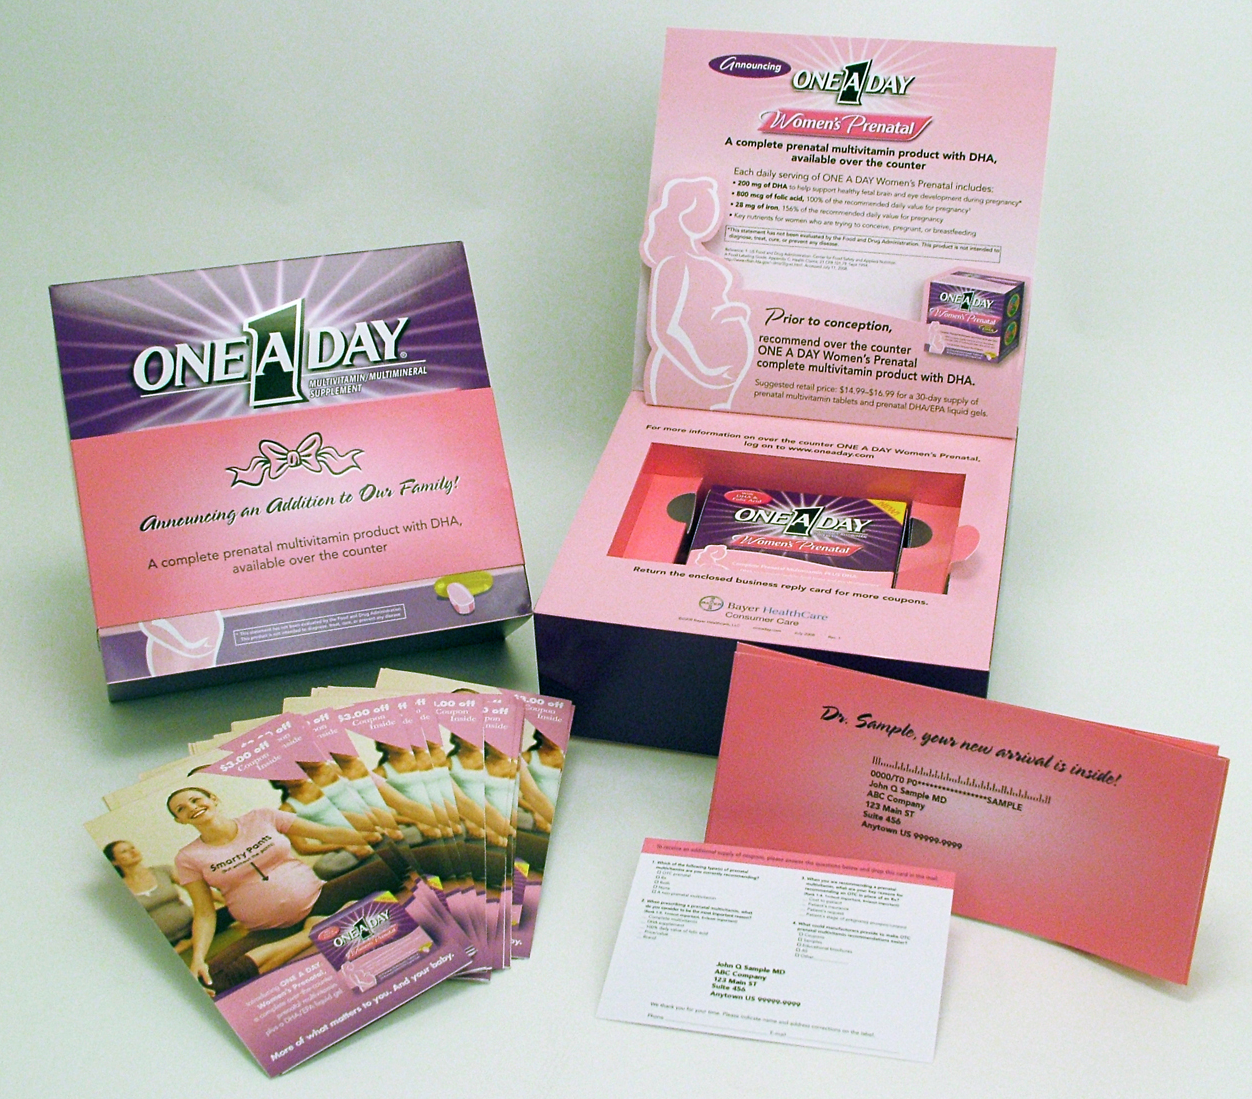 BAYER ONE-A-DAY SampleMailer_edited